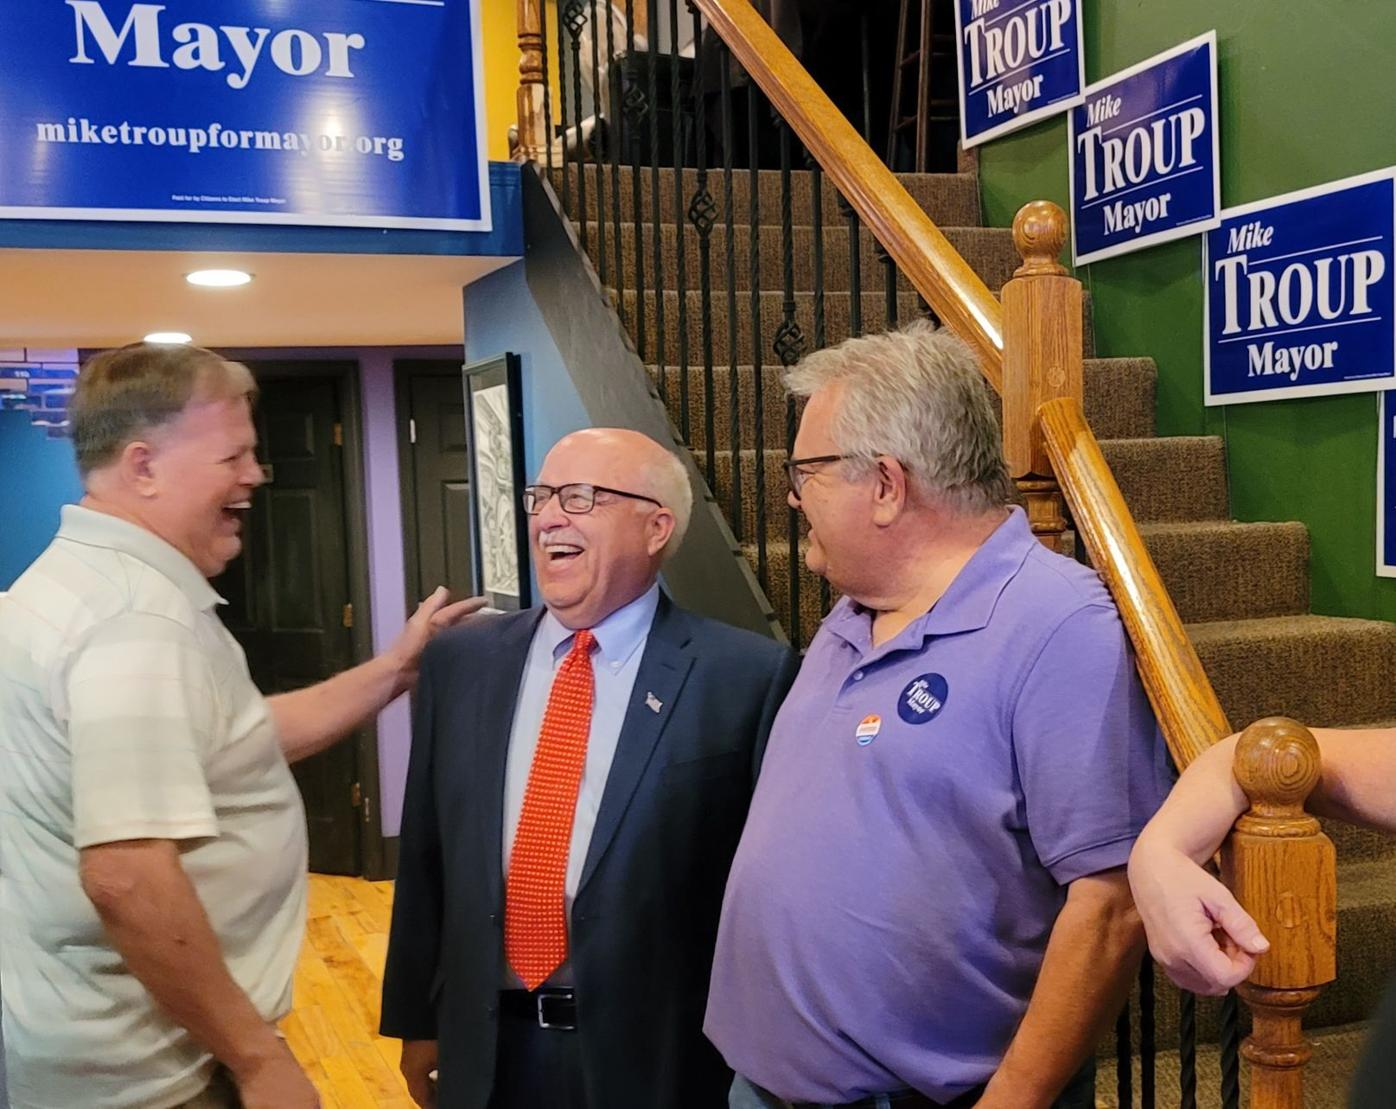 Troup elected mayor of Quincy